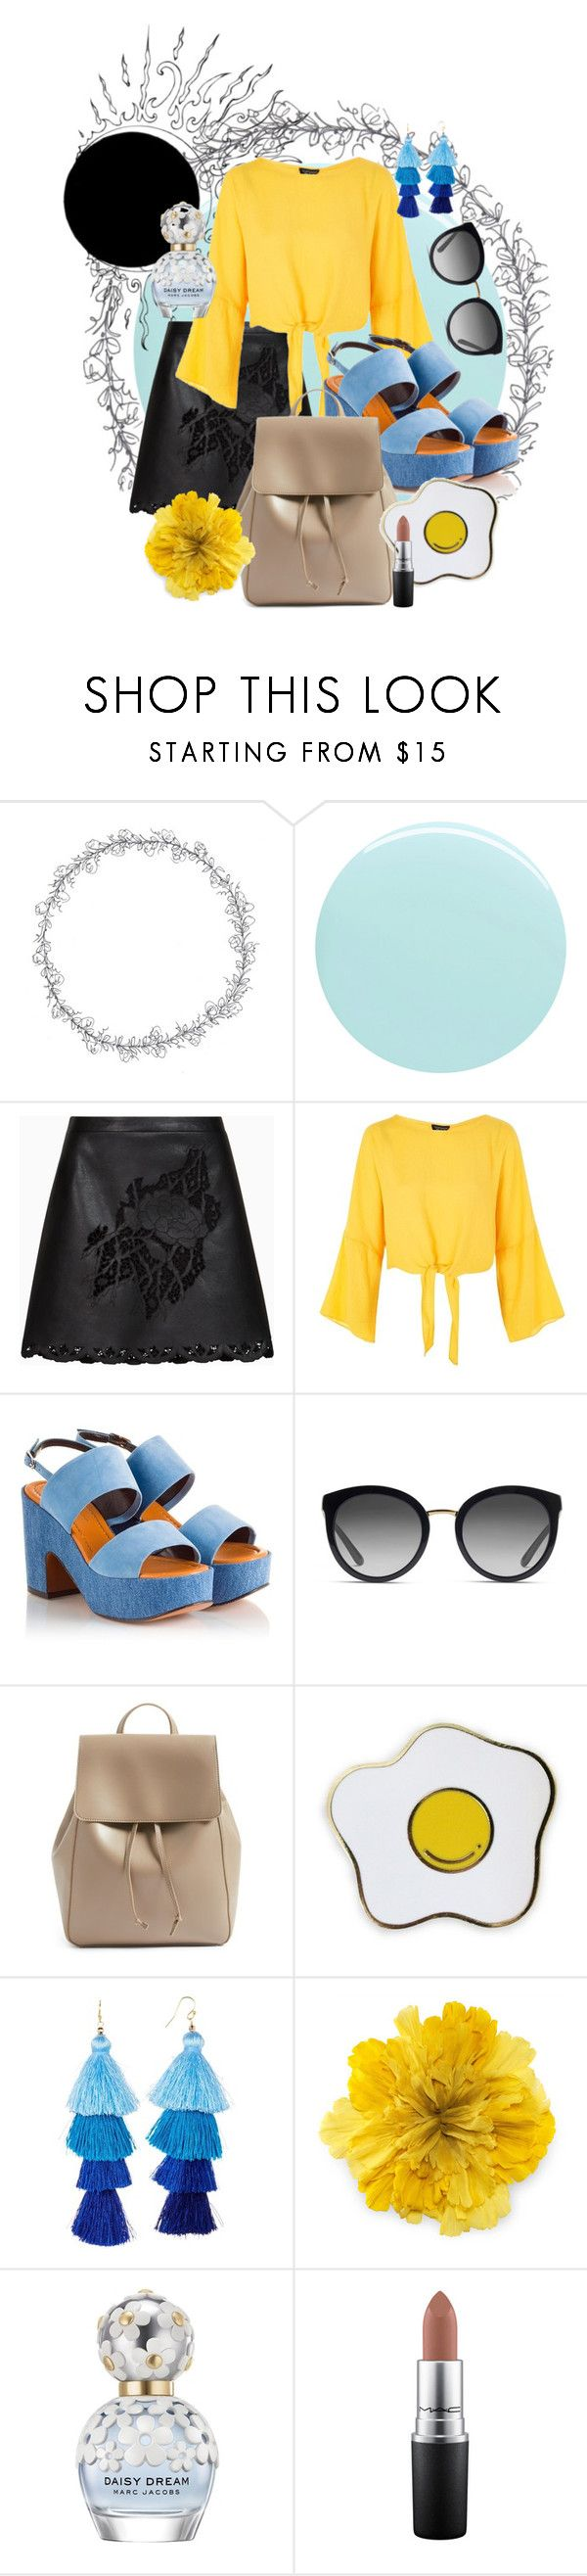 """""""honey"""" by lexie-olives ❤ liked on Polyvore featuring JINsoon, BCBGMAXAZRIA, Topshop, Robert Clergerie, Dolce&Gabbana, Sole Society, Taolei, Gucci, Marc Jacobs and MAC Cosmetics"""